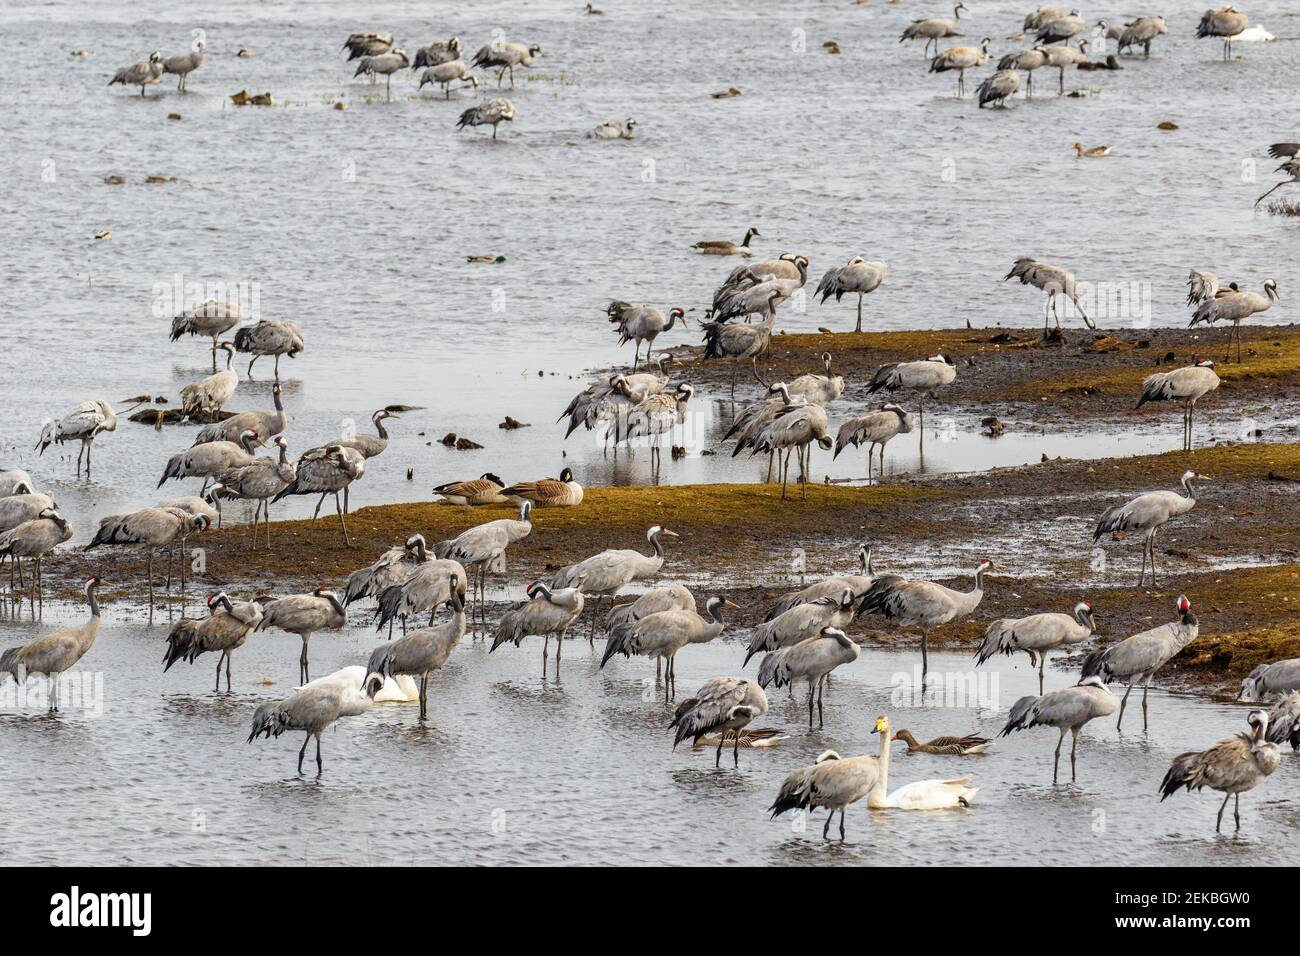 Resting Cranes and swans at a lake in the spring Stock Photo